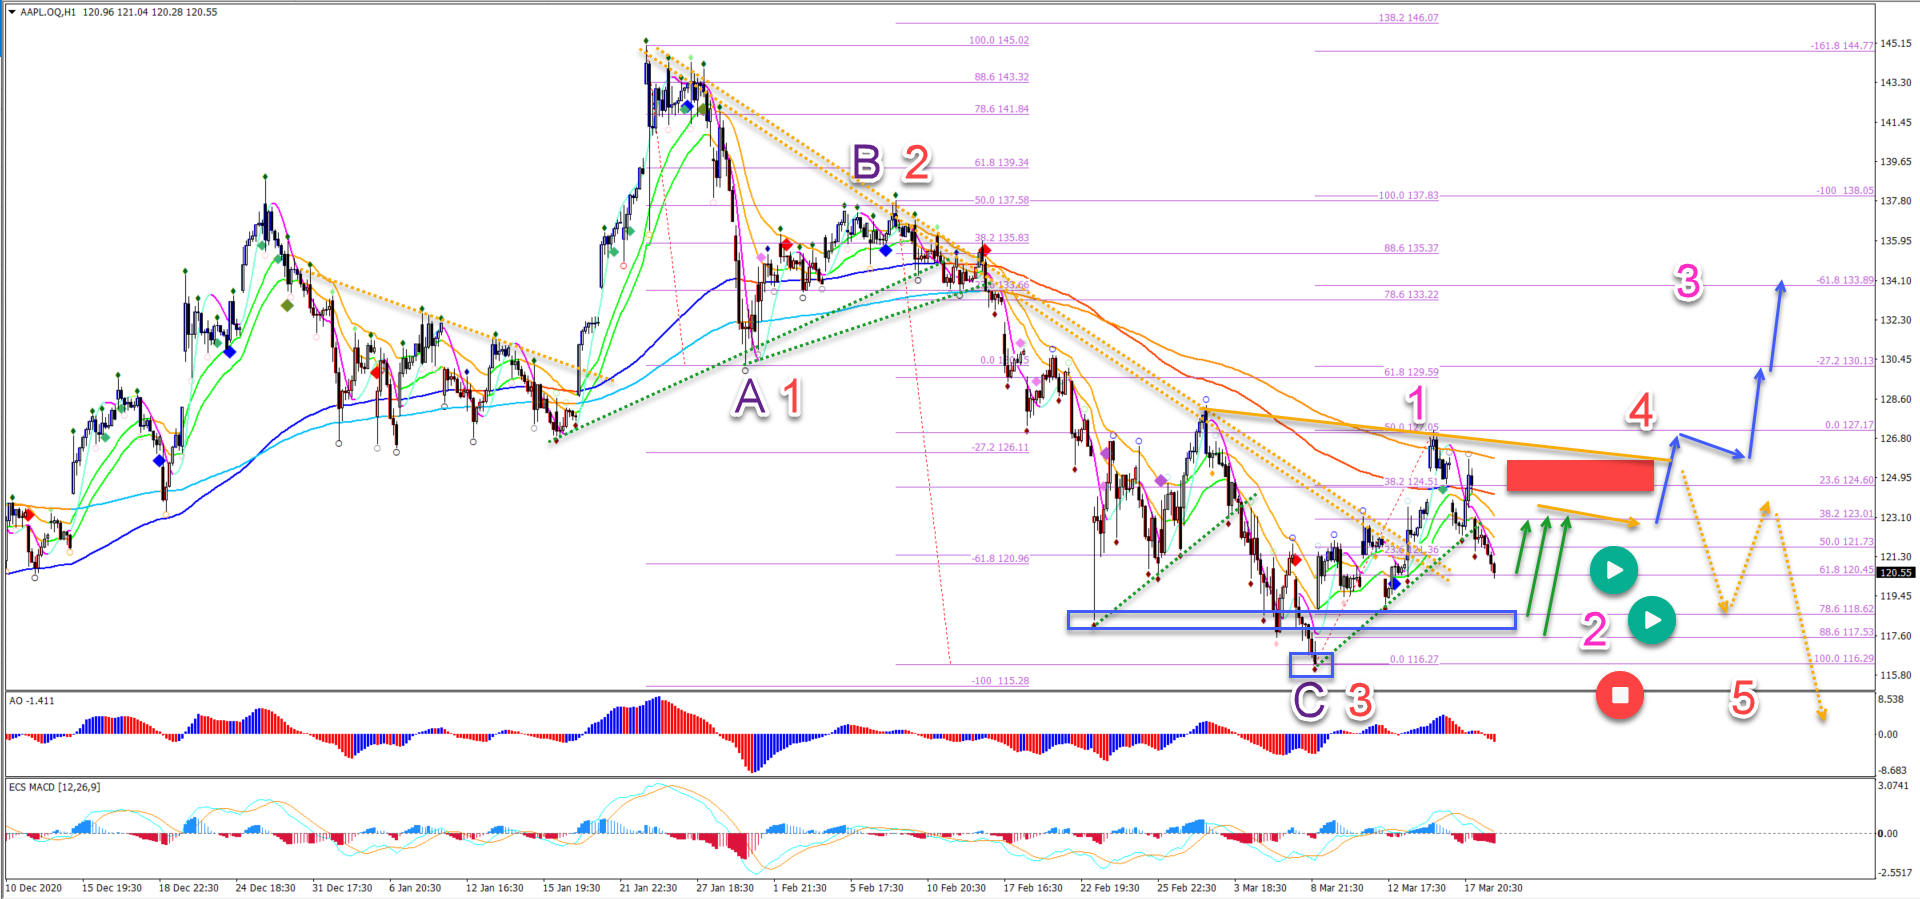 AAPL 19.03.2021 chart